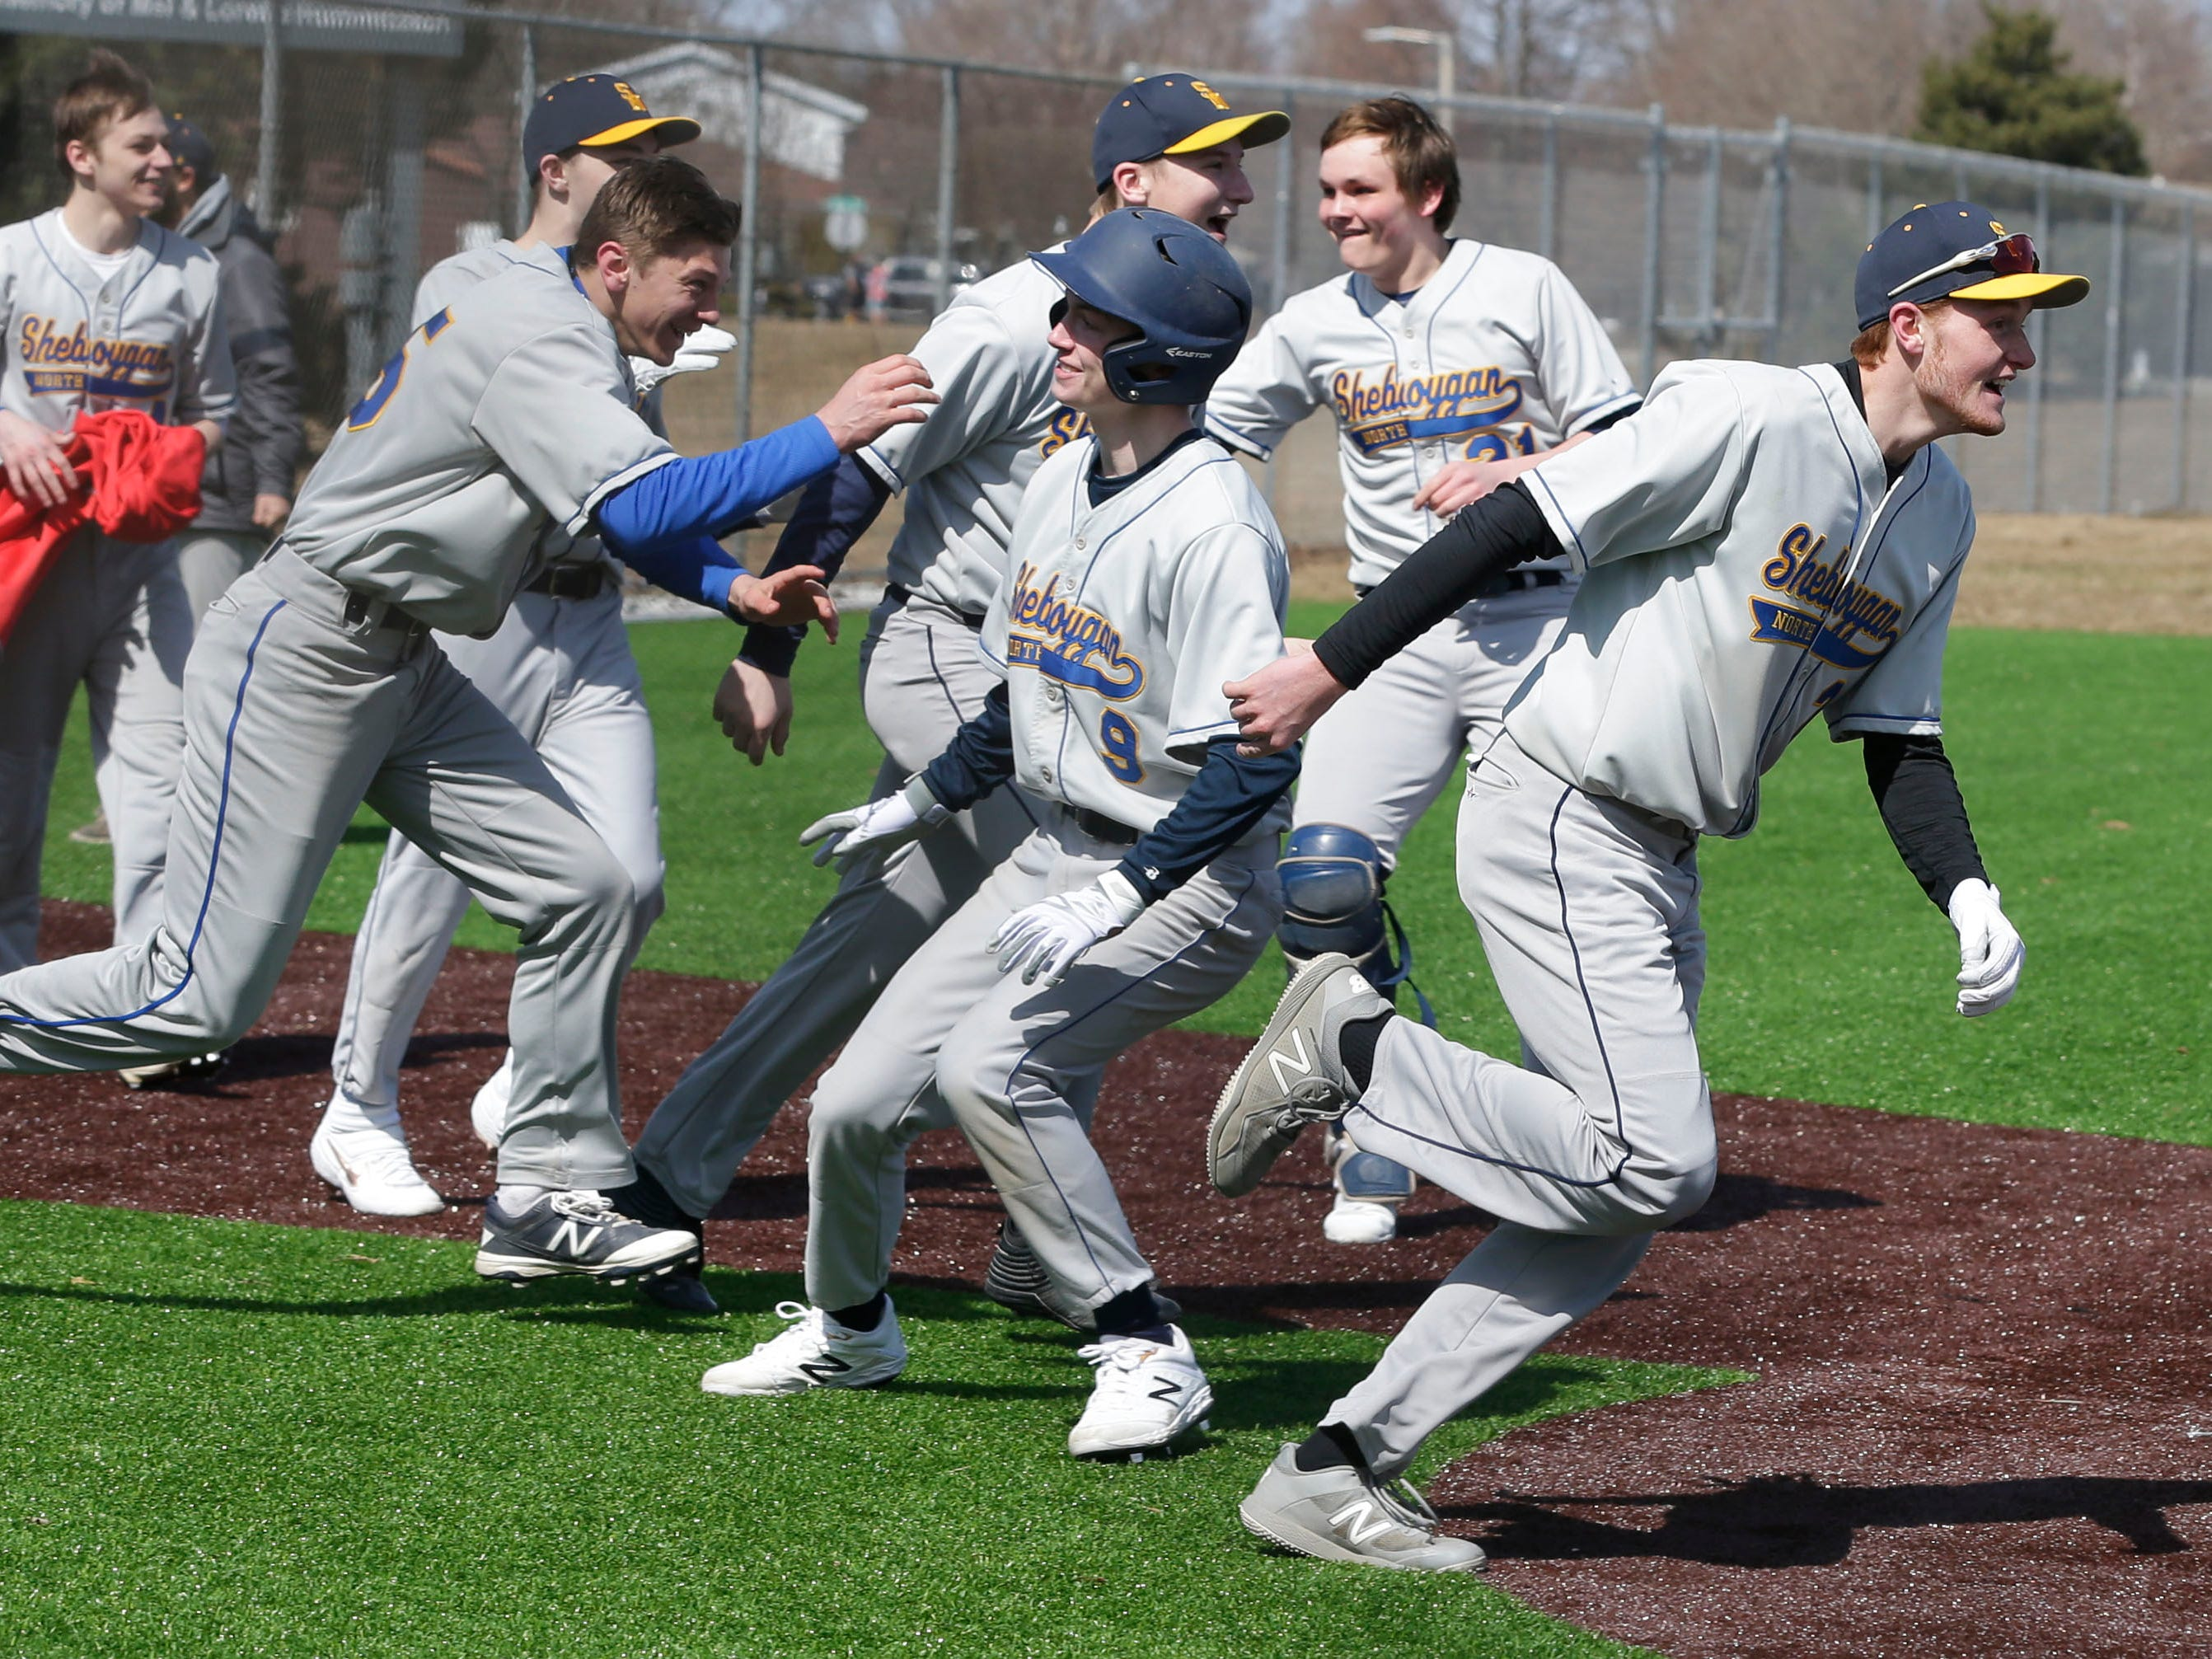 Sheboygan North's baseball team rushes the field following their 7-inning 9-8 win over Appleton North, Friday, March 29, 2019, at the Field of Dreams complex in Sheboygan, Wis.